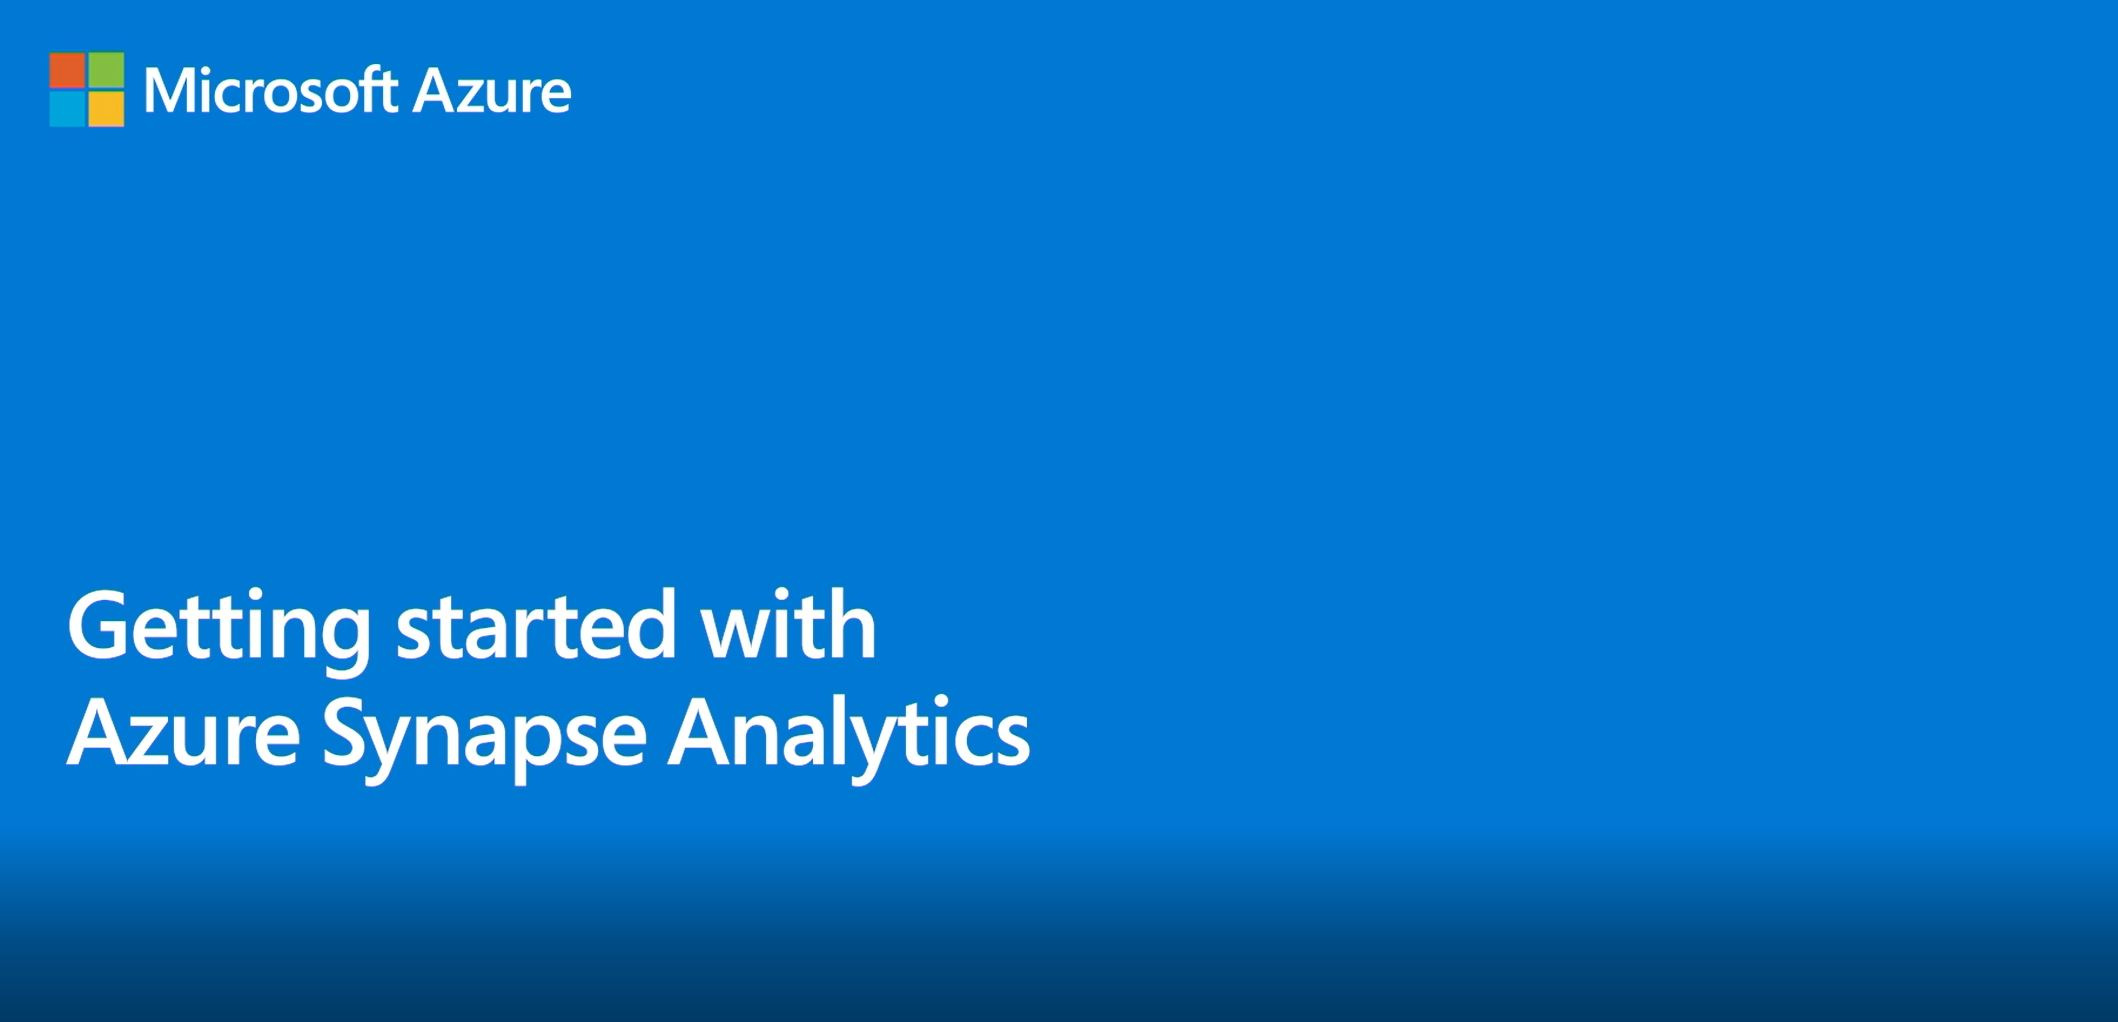 Get started with Azure Synapse Analytics and the new Knowledge Center